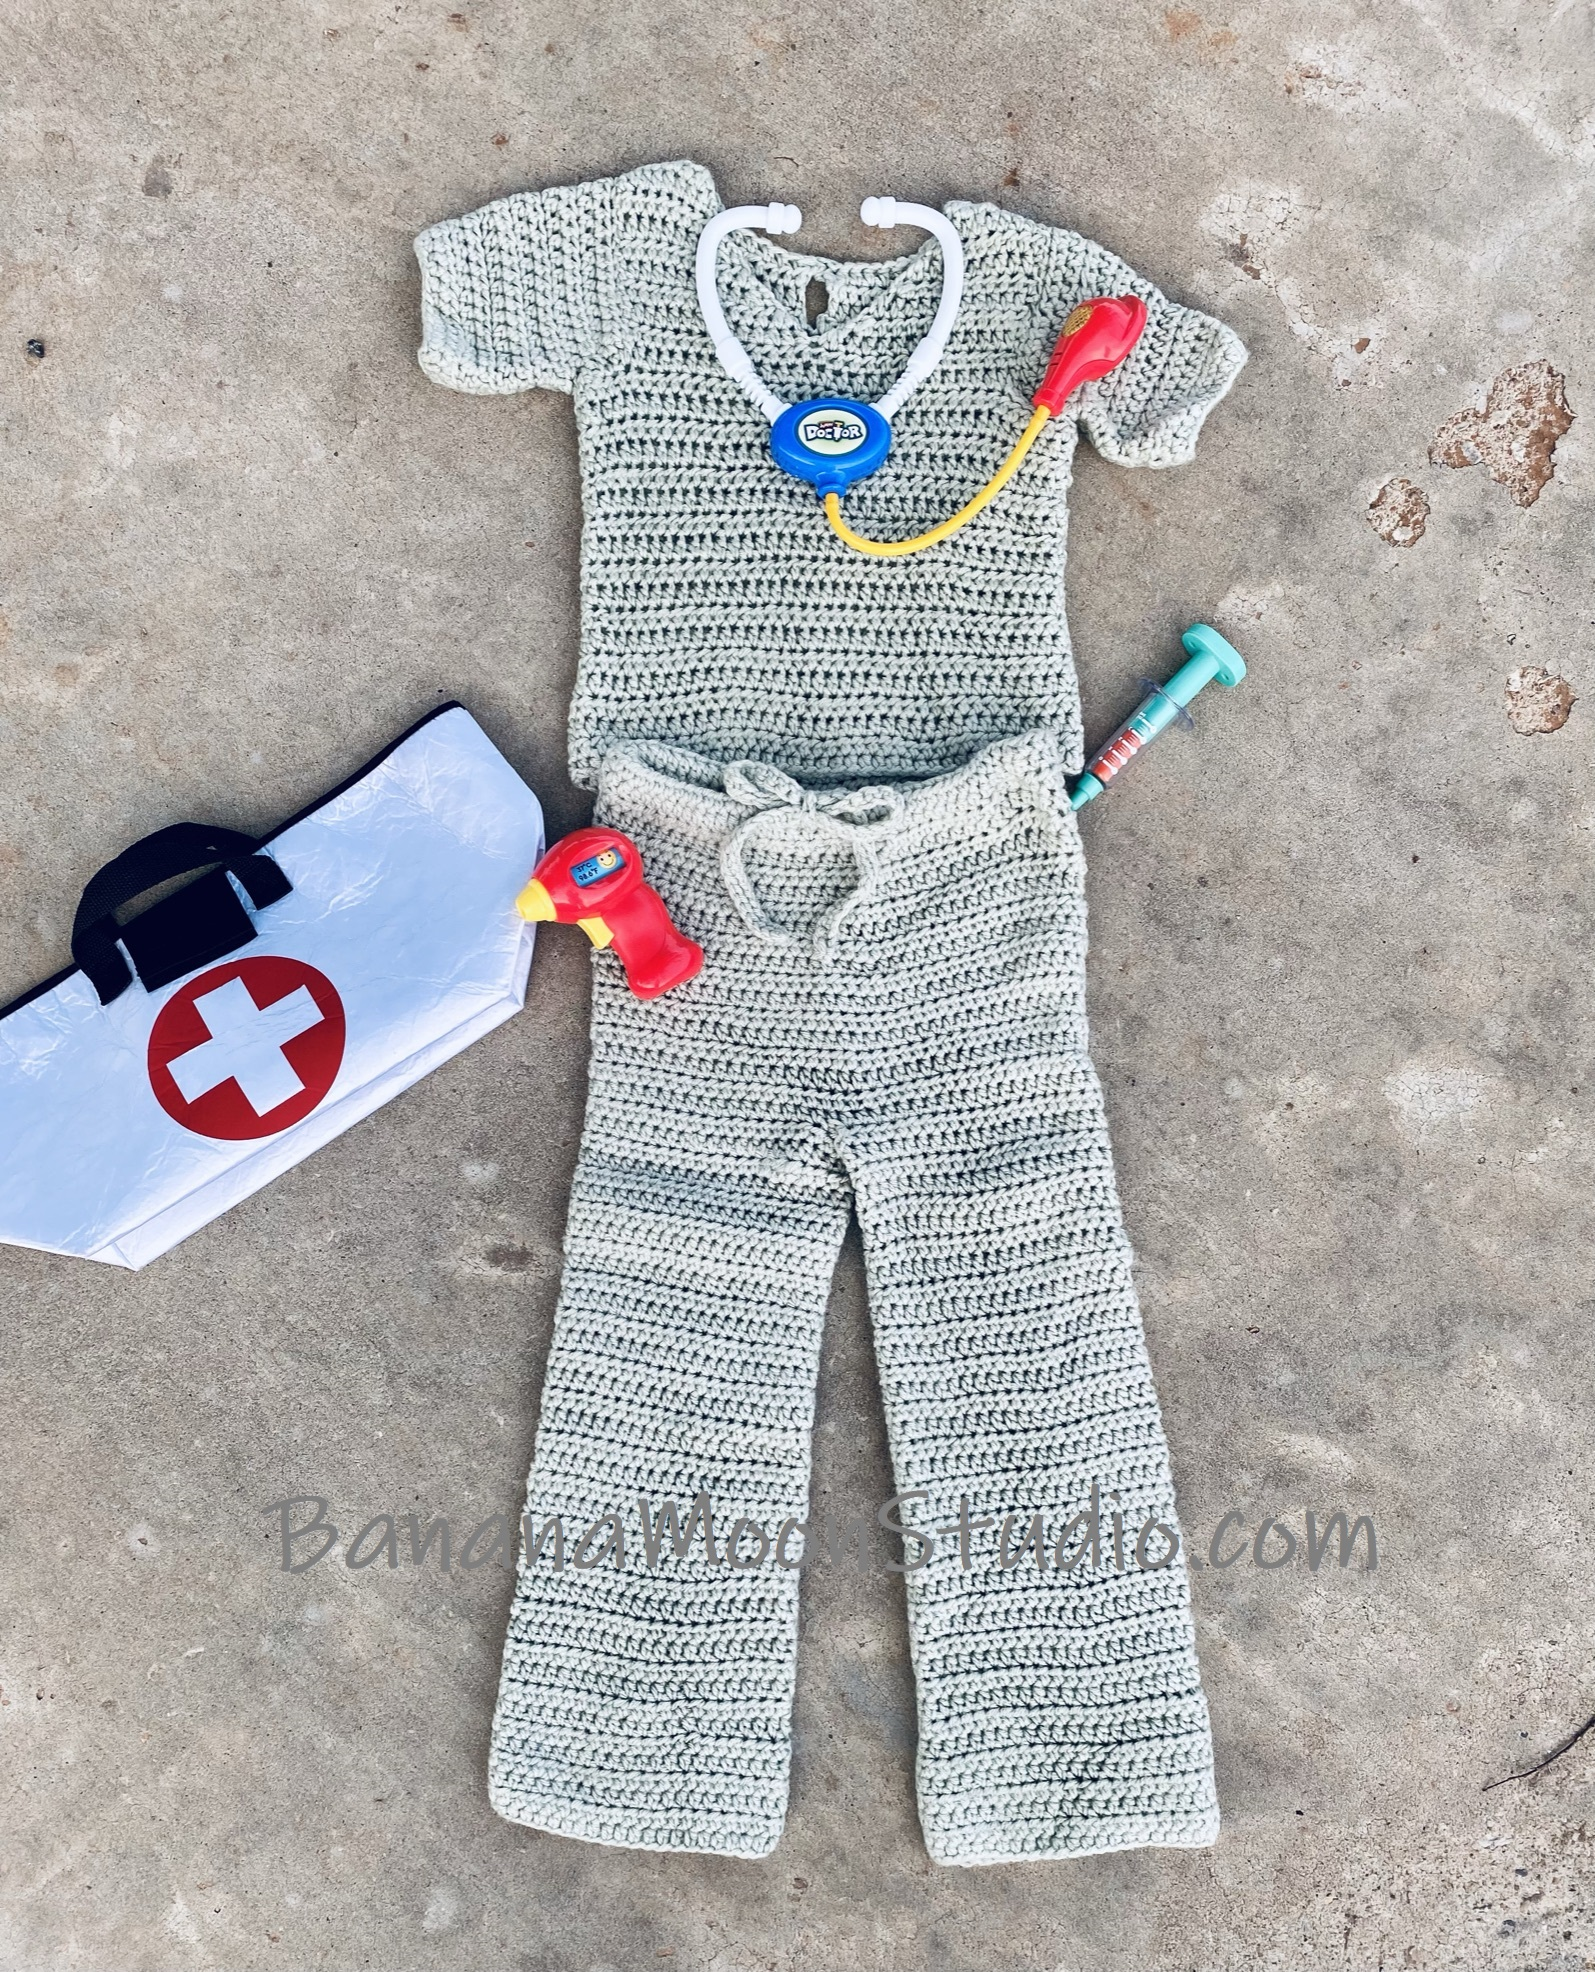 Pale green crochet top and drawstring pants on a gray background. White bag with white and red cross, children's toy thermometer, syringe, and stethoscope. Text reads BananaMoonStudio.com.